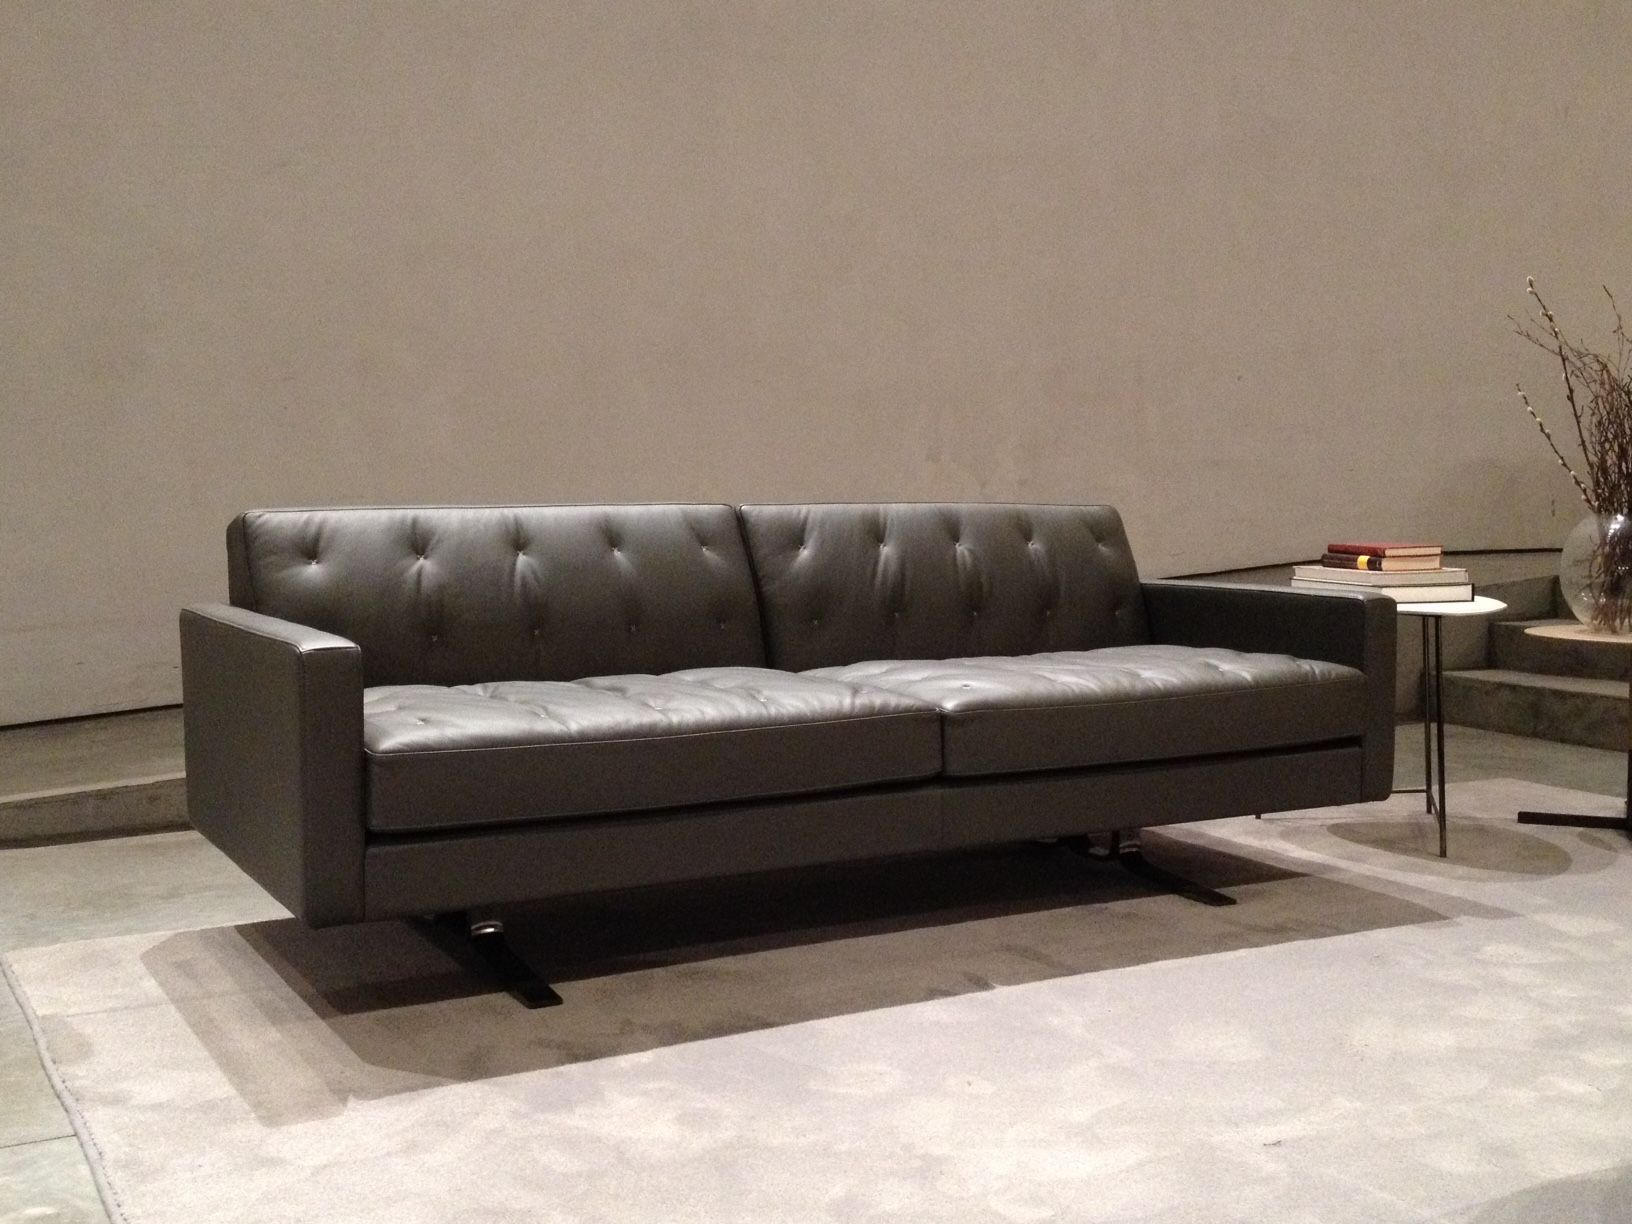 Kennedee sofa designed by JeanMarie Massaud, manufactured